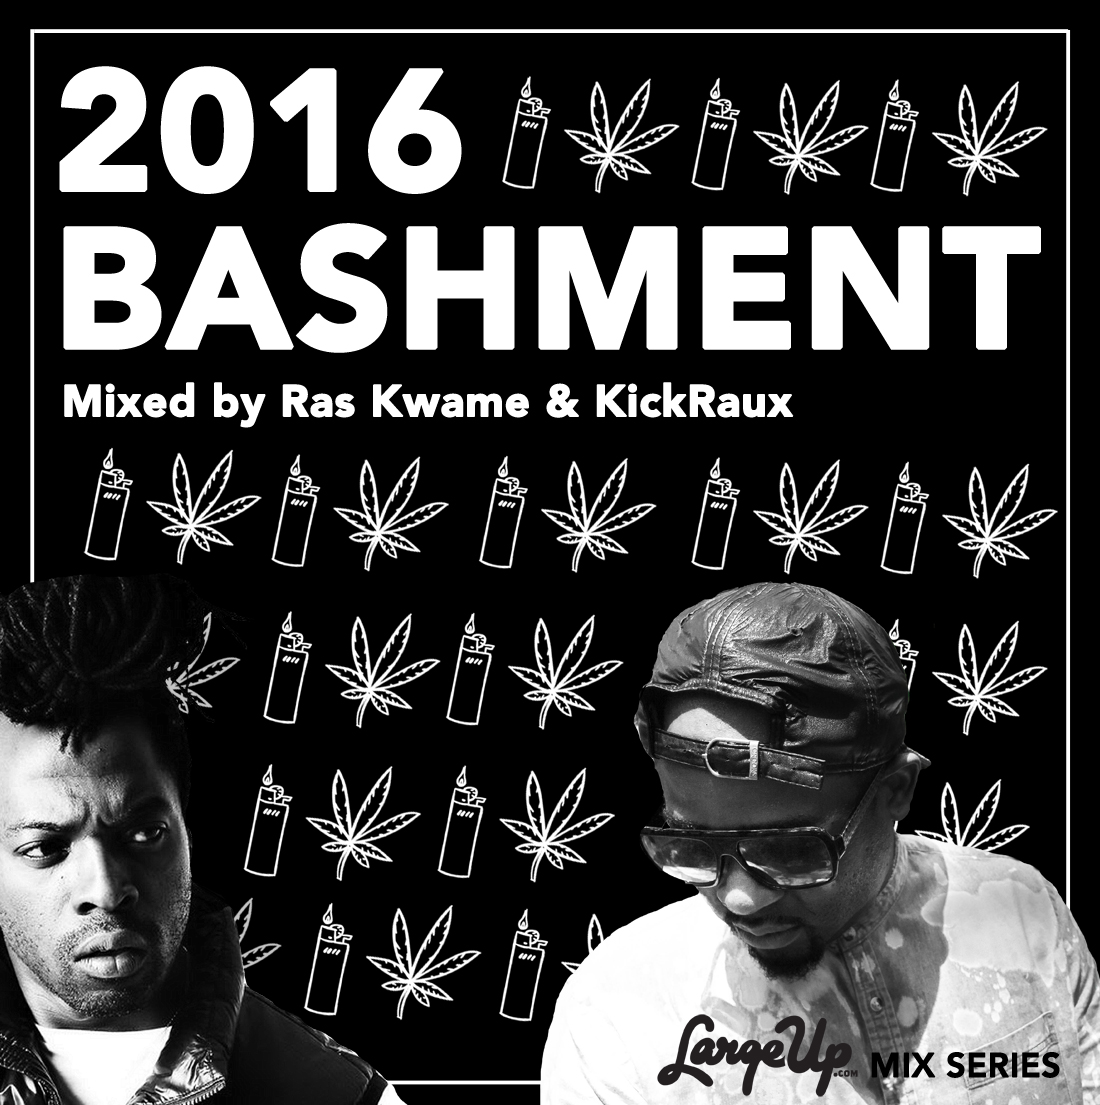 LargeUp Mix Series: Ras Kwame + KickRaux's 2016 Bashment Mix